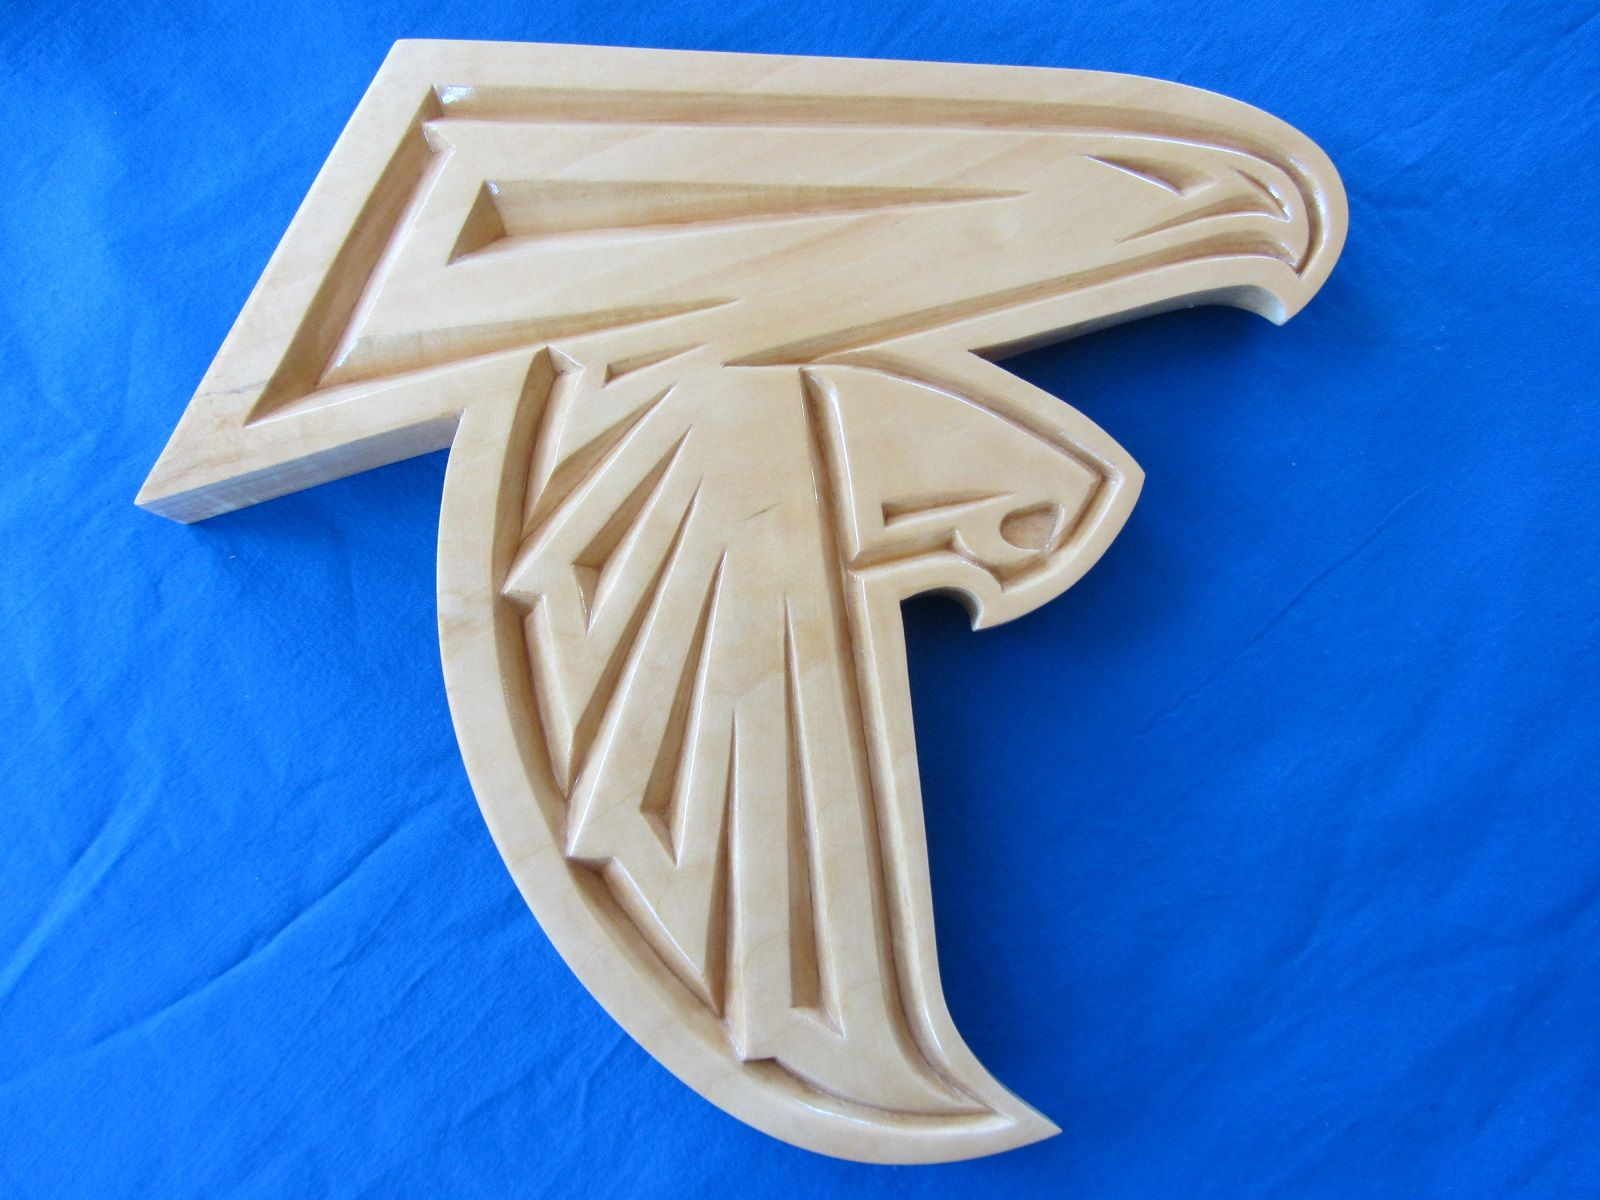 In chip carving of basswood wood pinterest